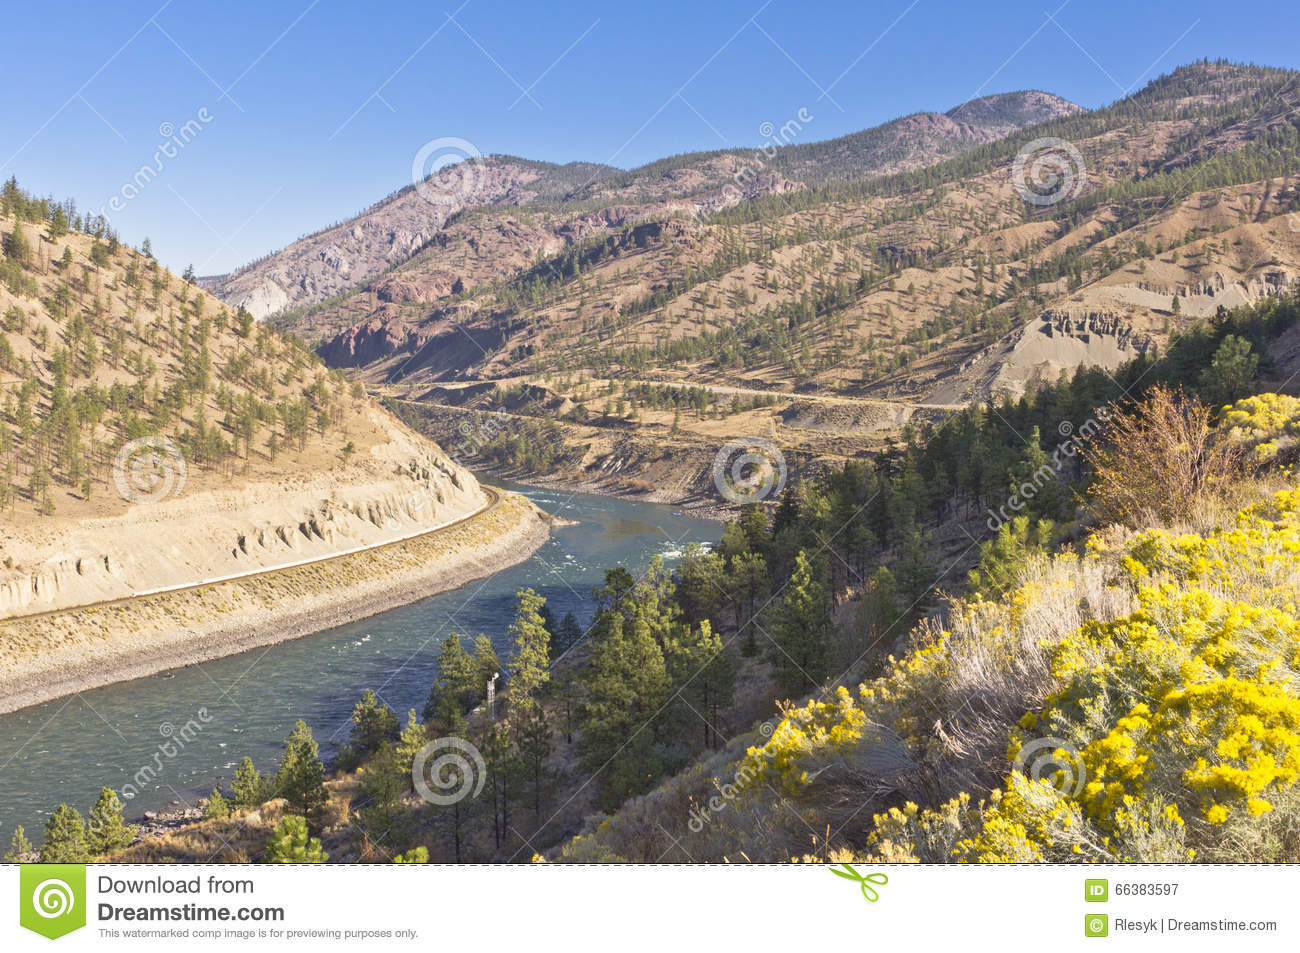 River winding through dry mountains